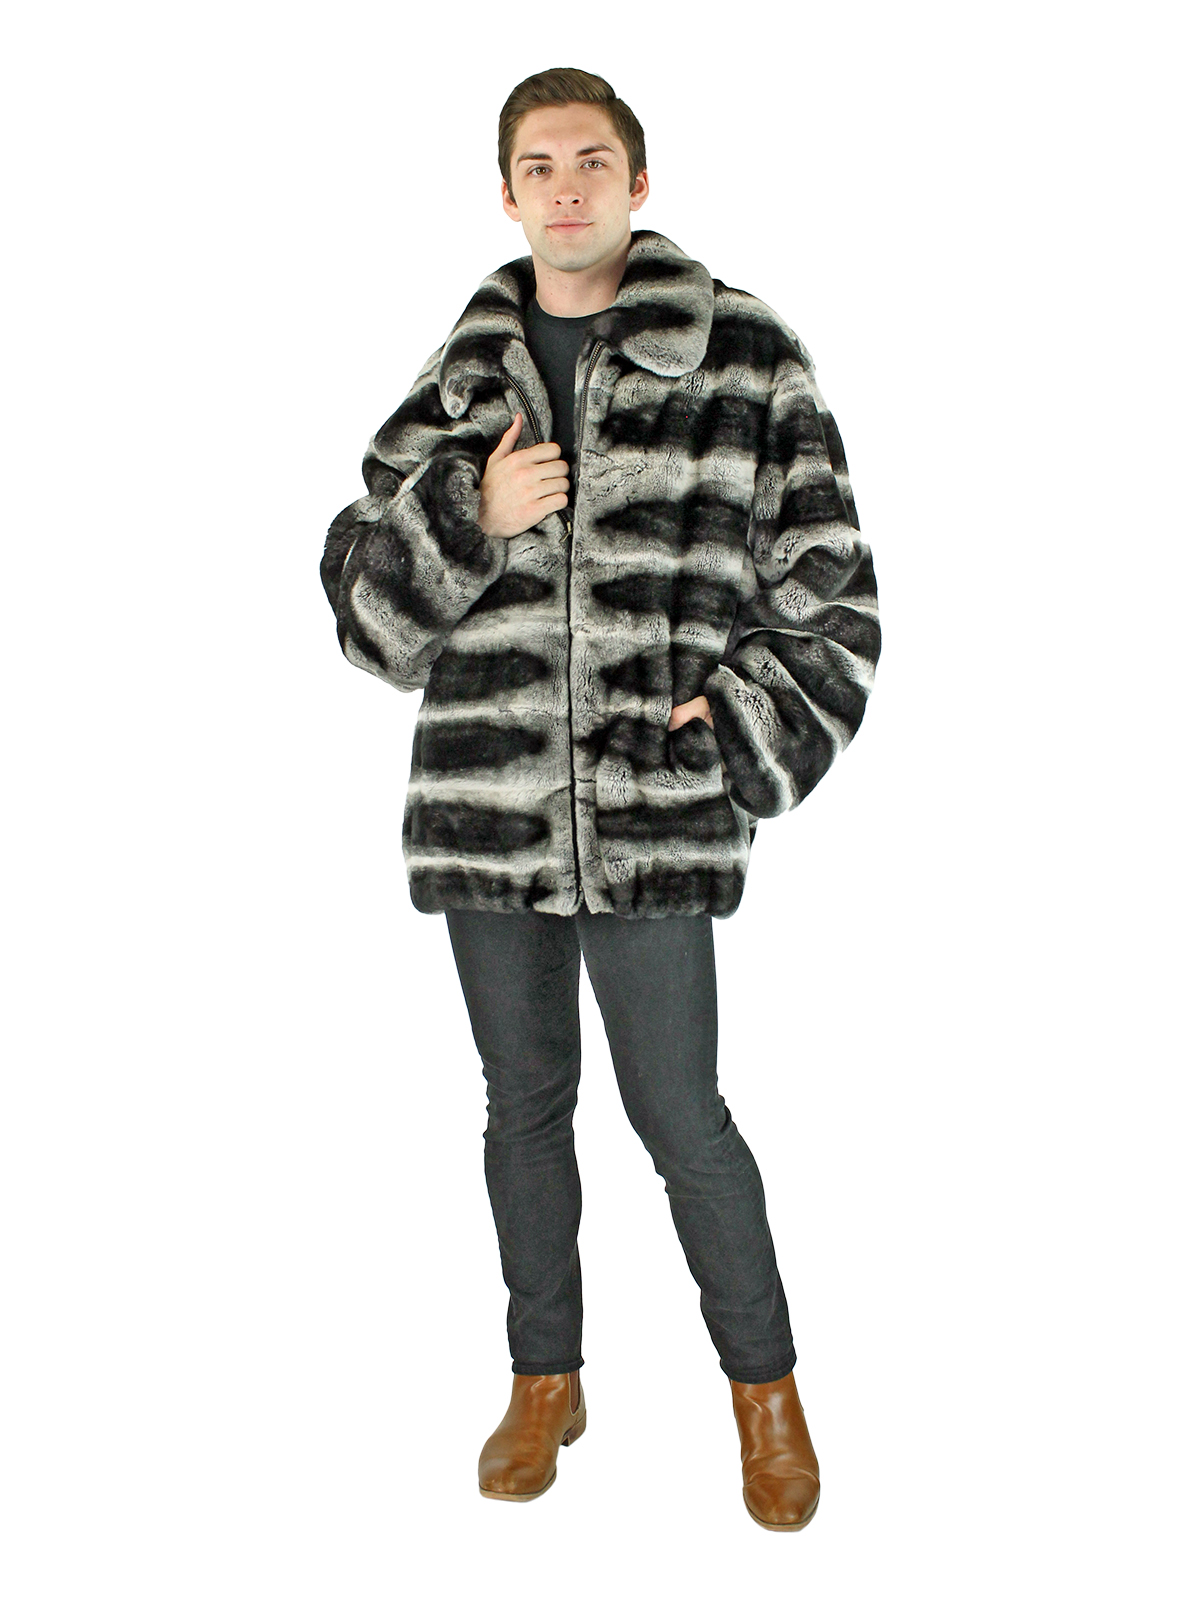 Man's Grey Chinchilla Dyed Rex Rabbit Fur Zipper Jacket